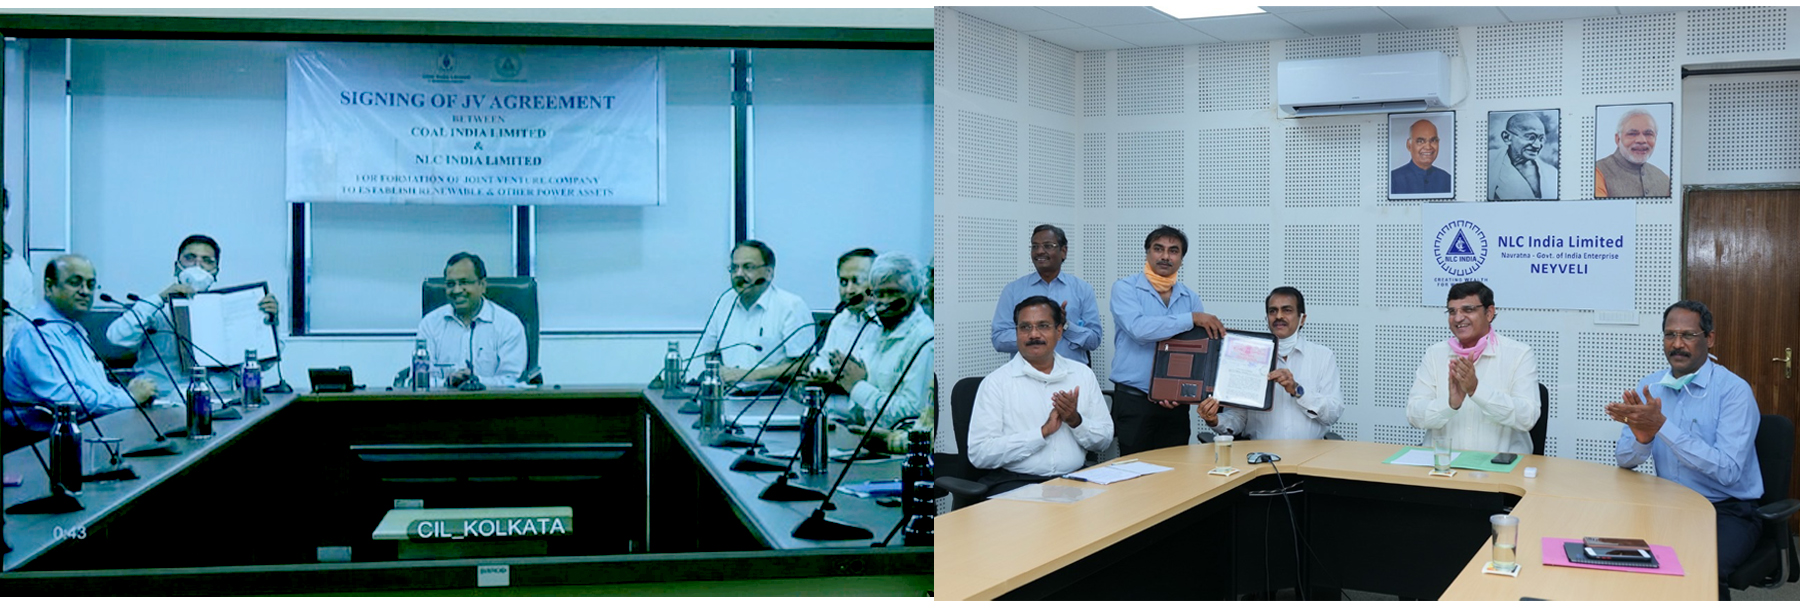 CIL signed an MoU with NLC India Ltd